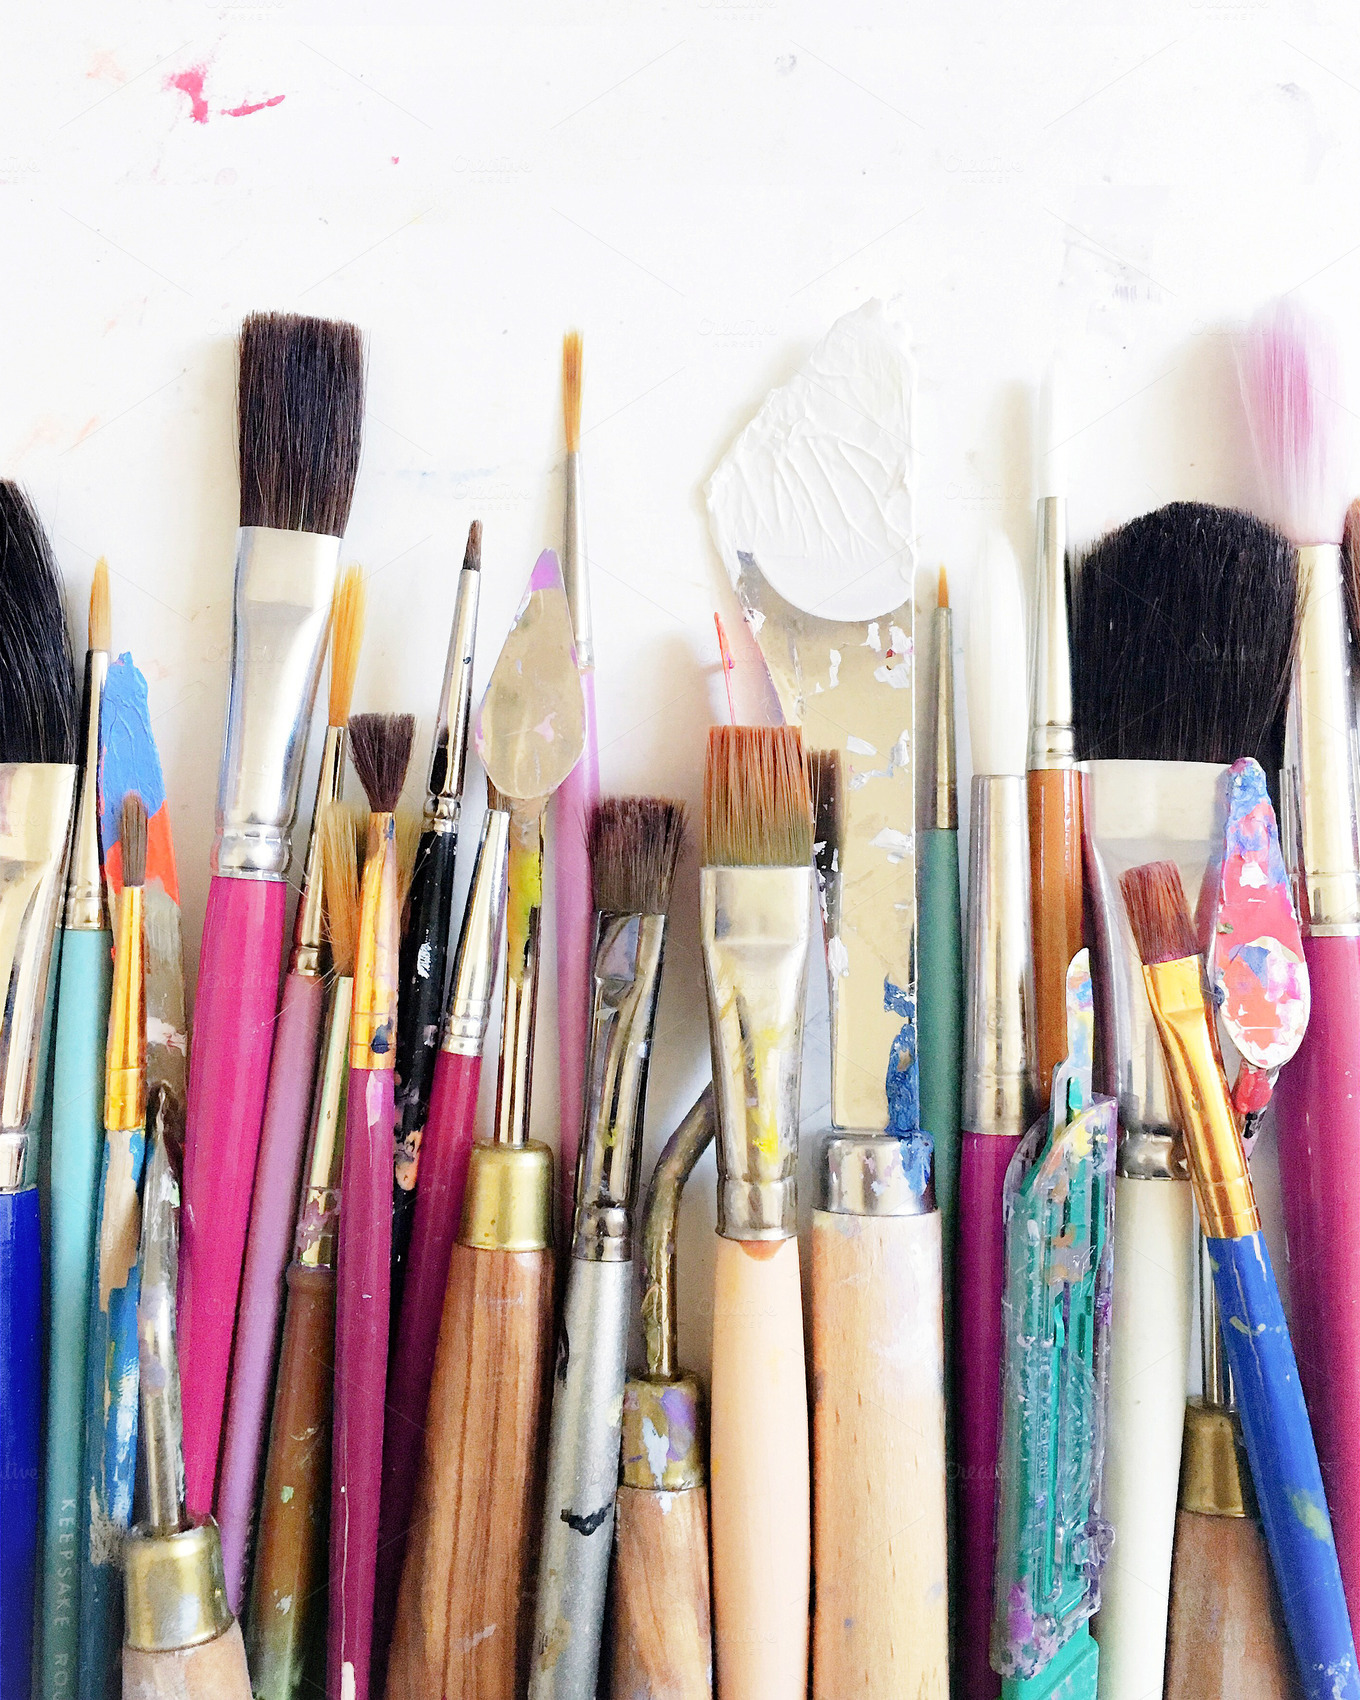 Colorful-Artist-Paintbrushes-Tools